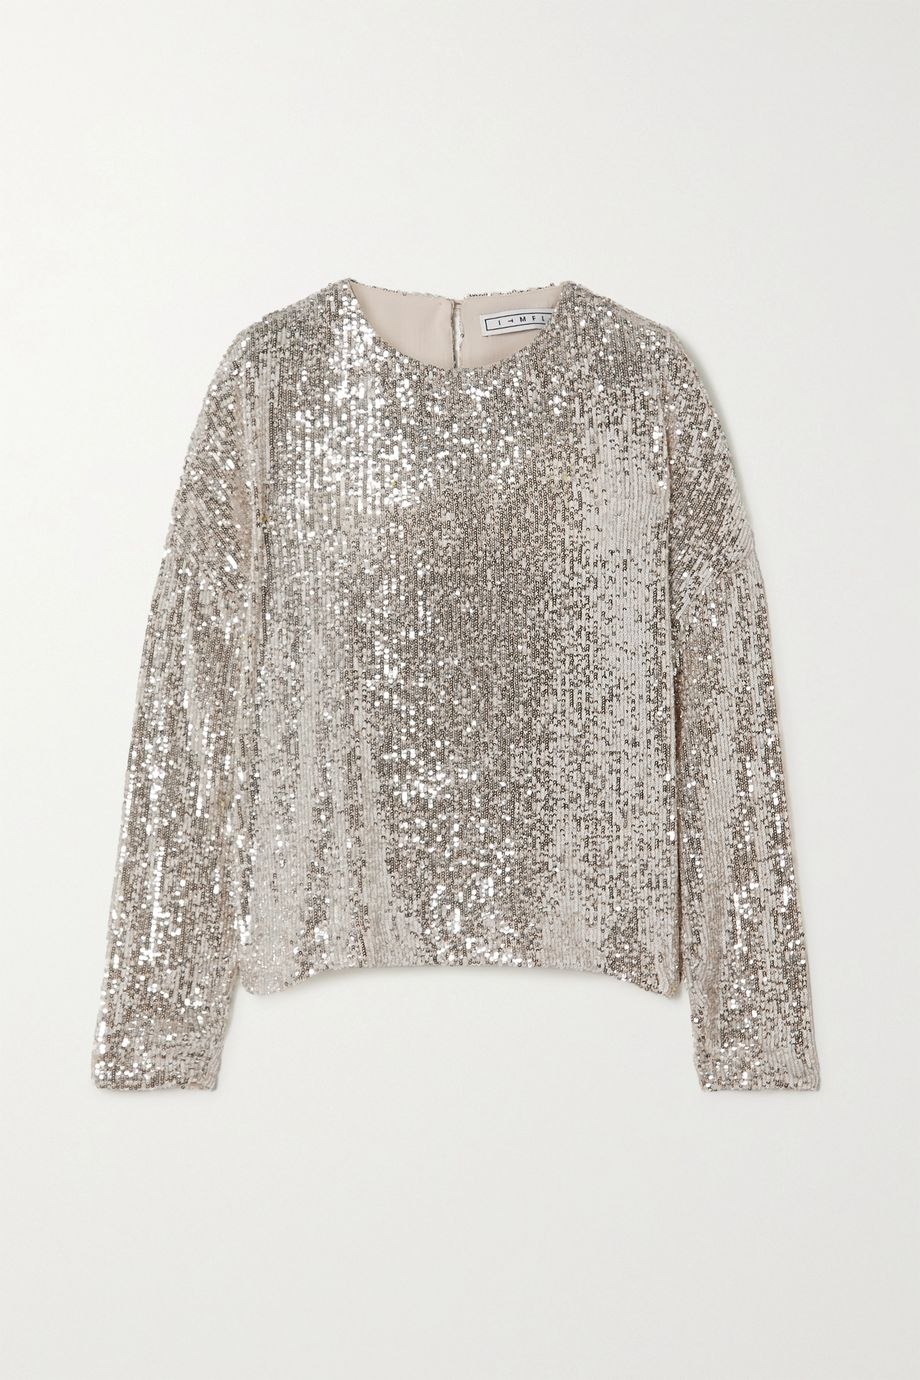 In The Mood For Love Alexandra sequined stretch-tulle top